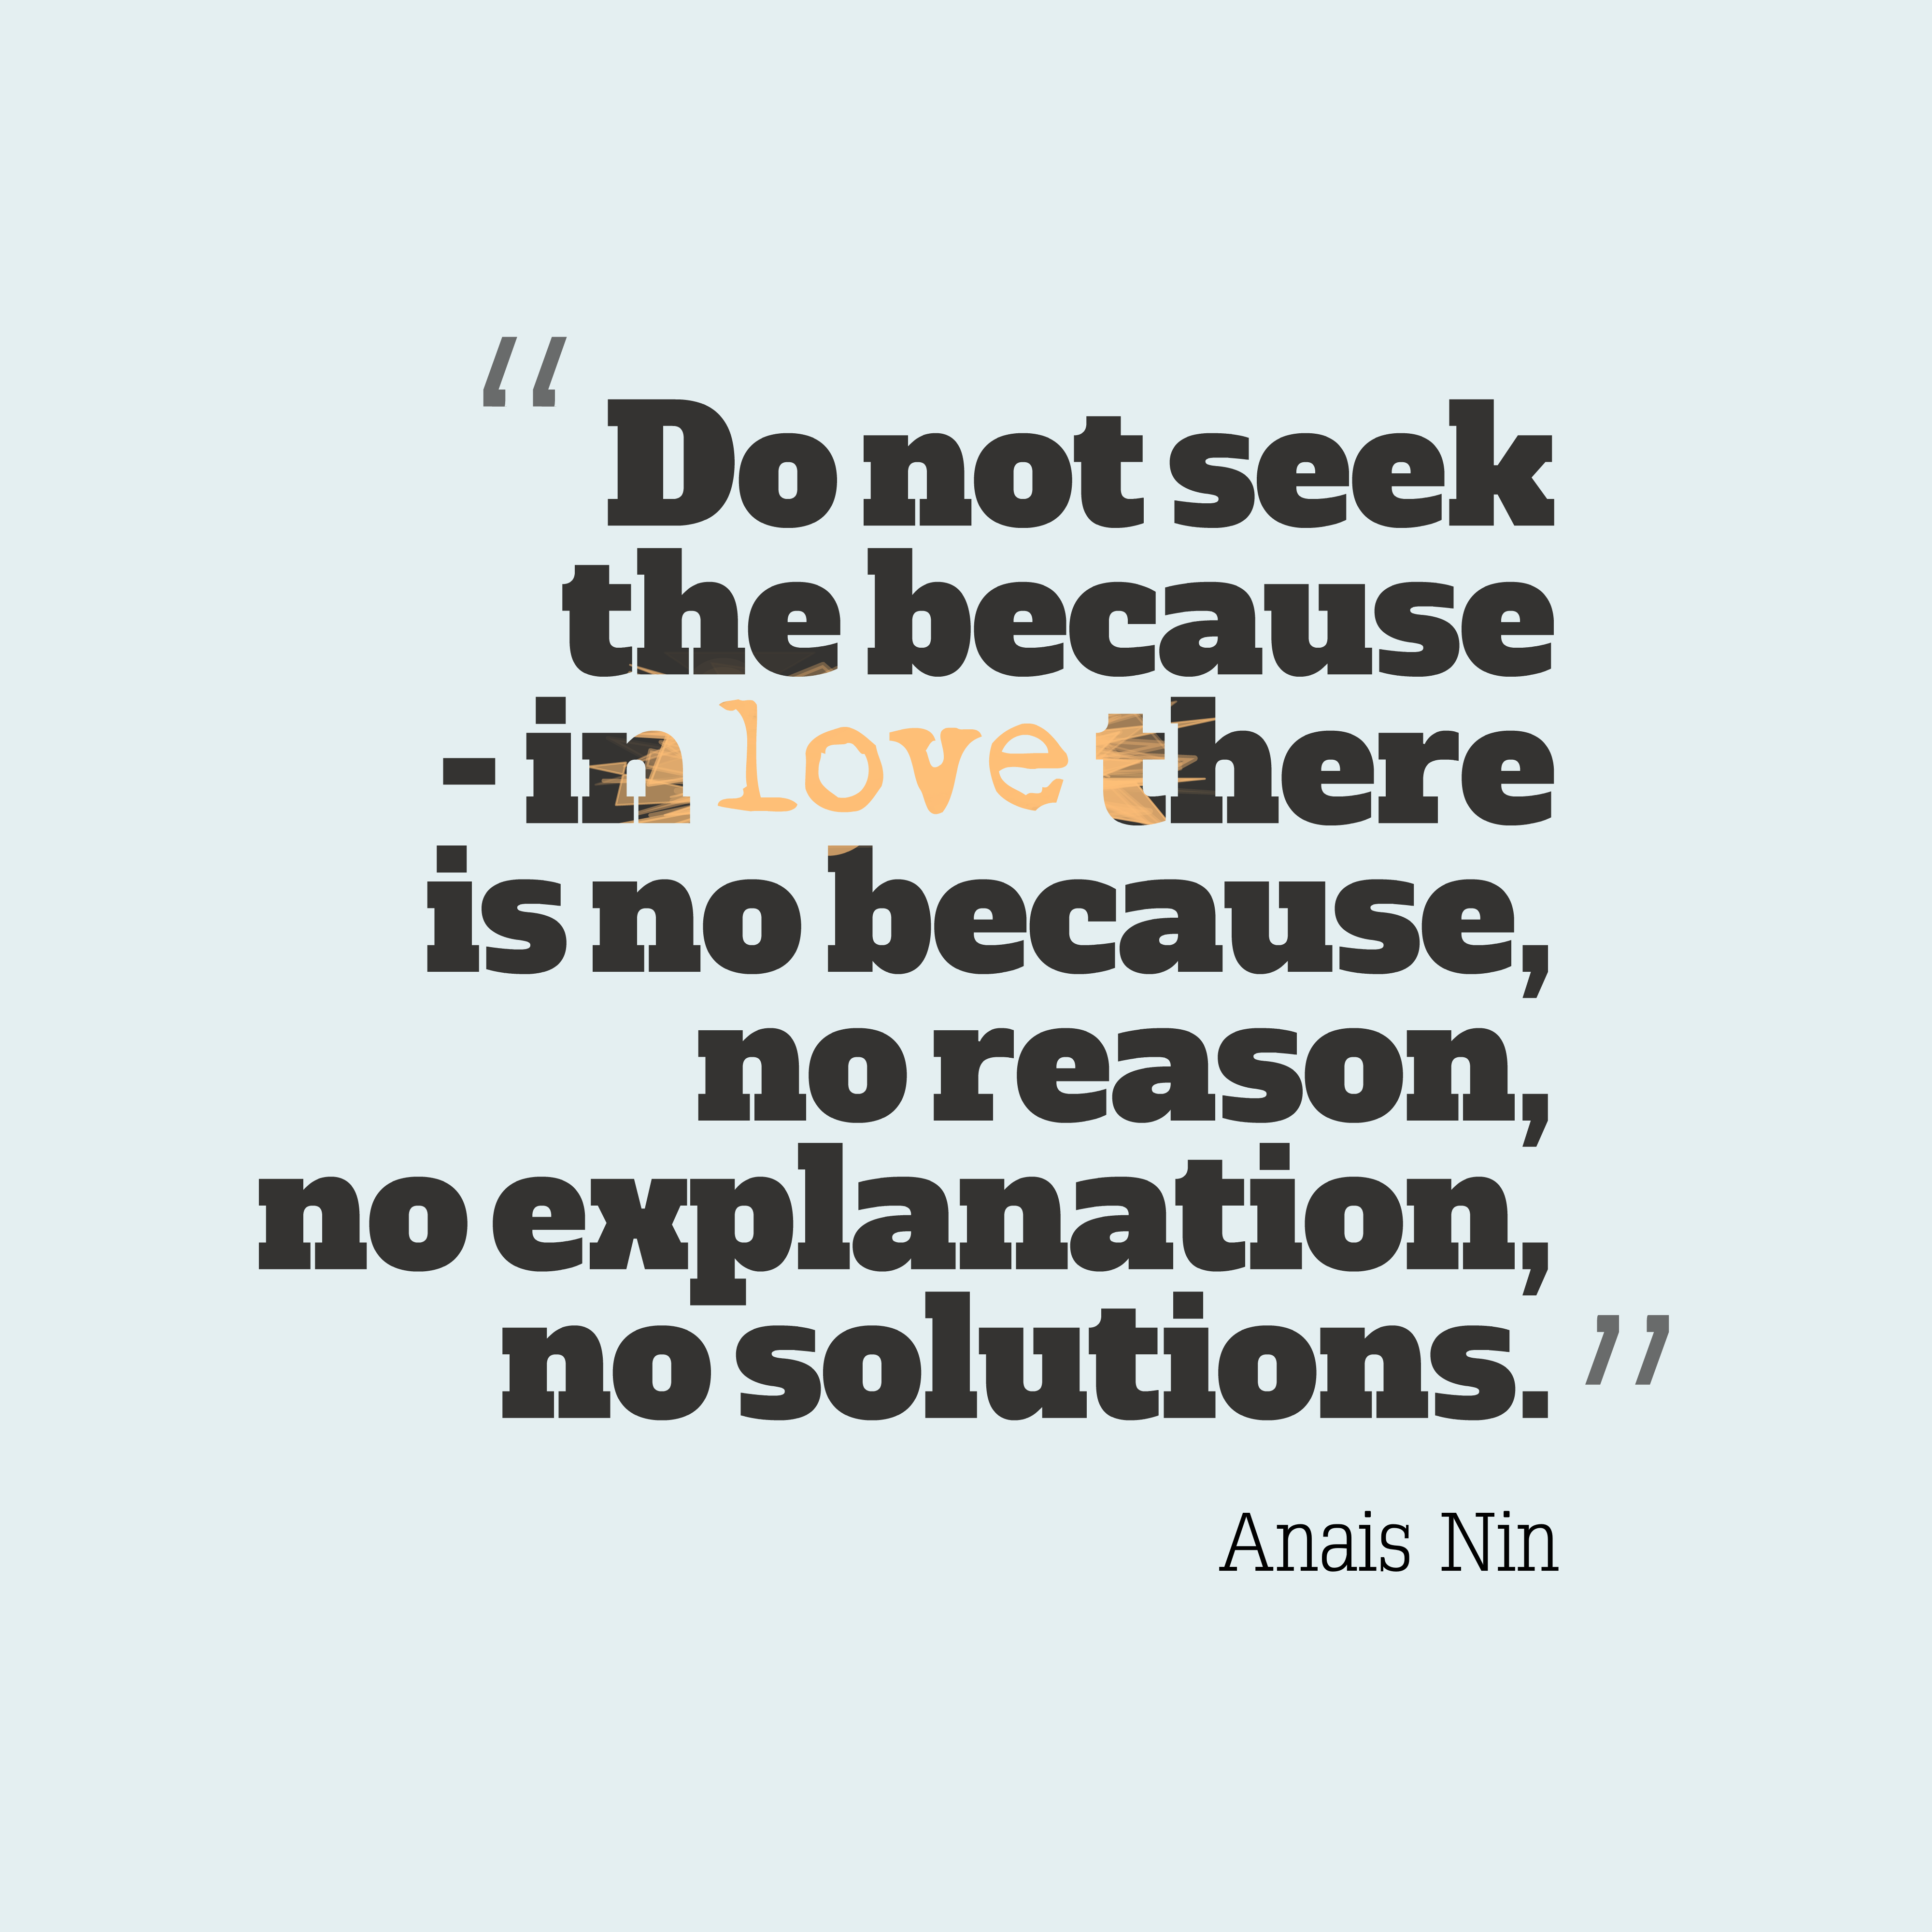 Quotes image of Do not seek the because - in love there is no because, no reason, no explanation, no solutions.